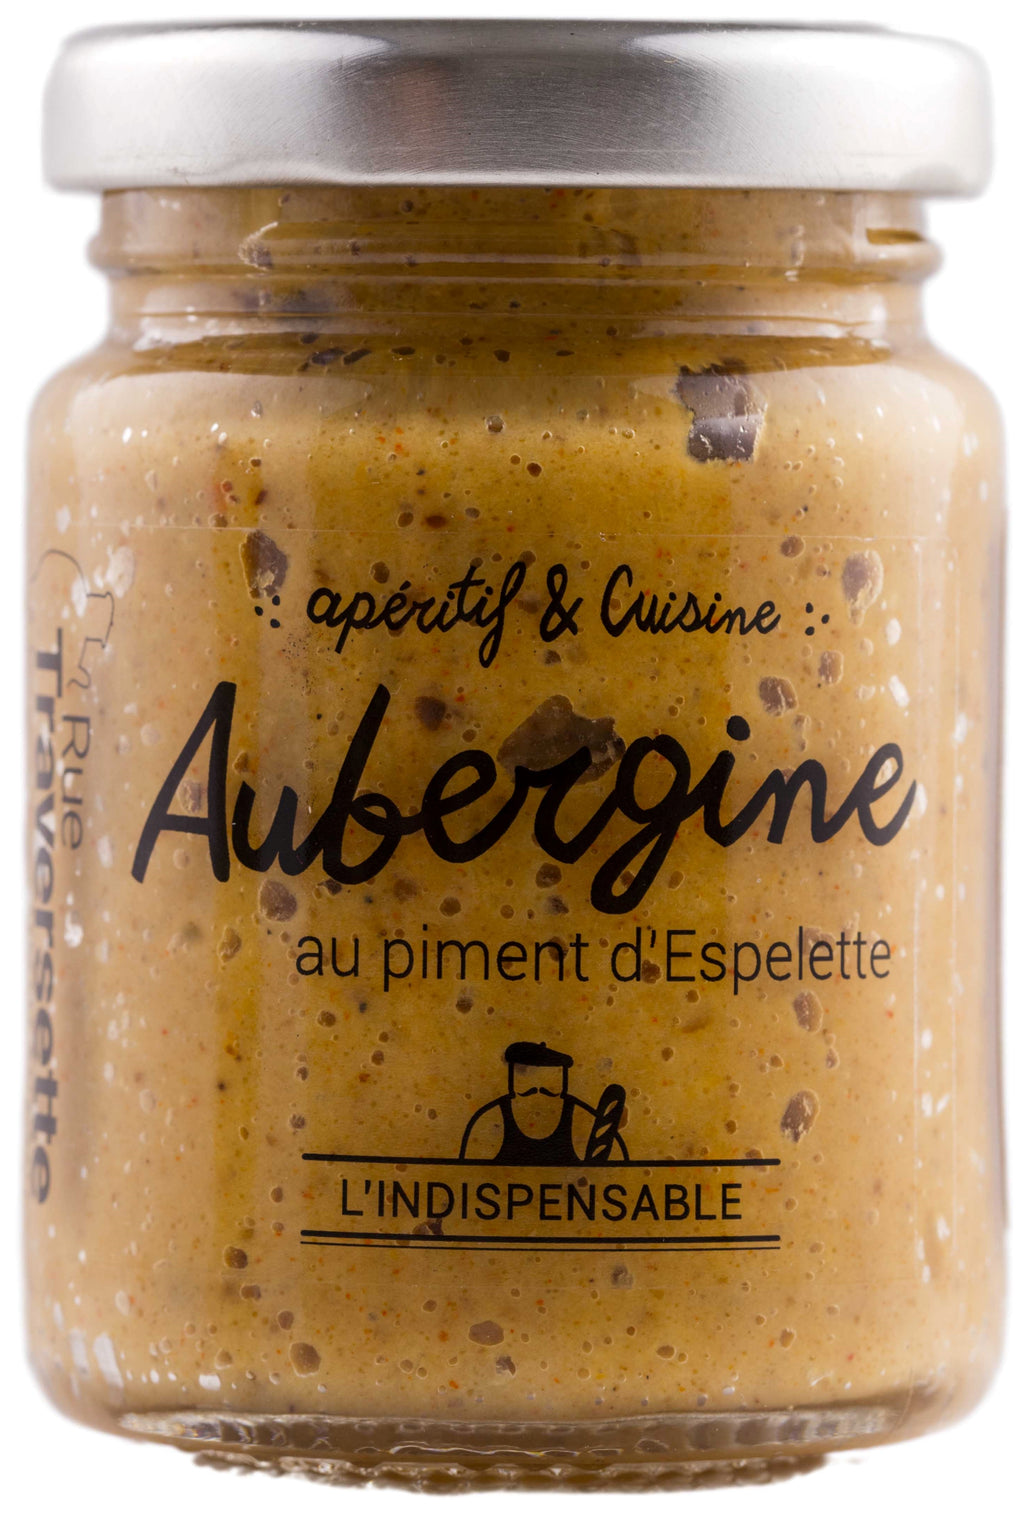 The Indispensables - Aubergines with Espelette Peppers